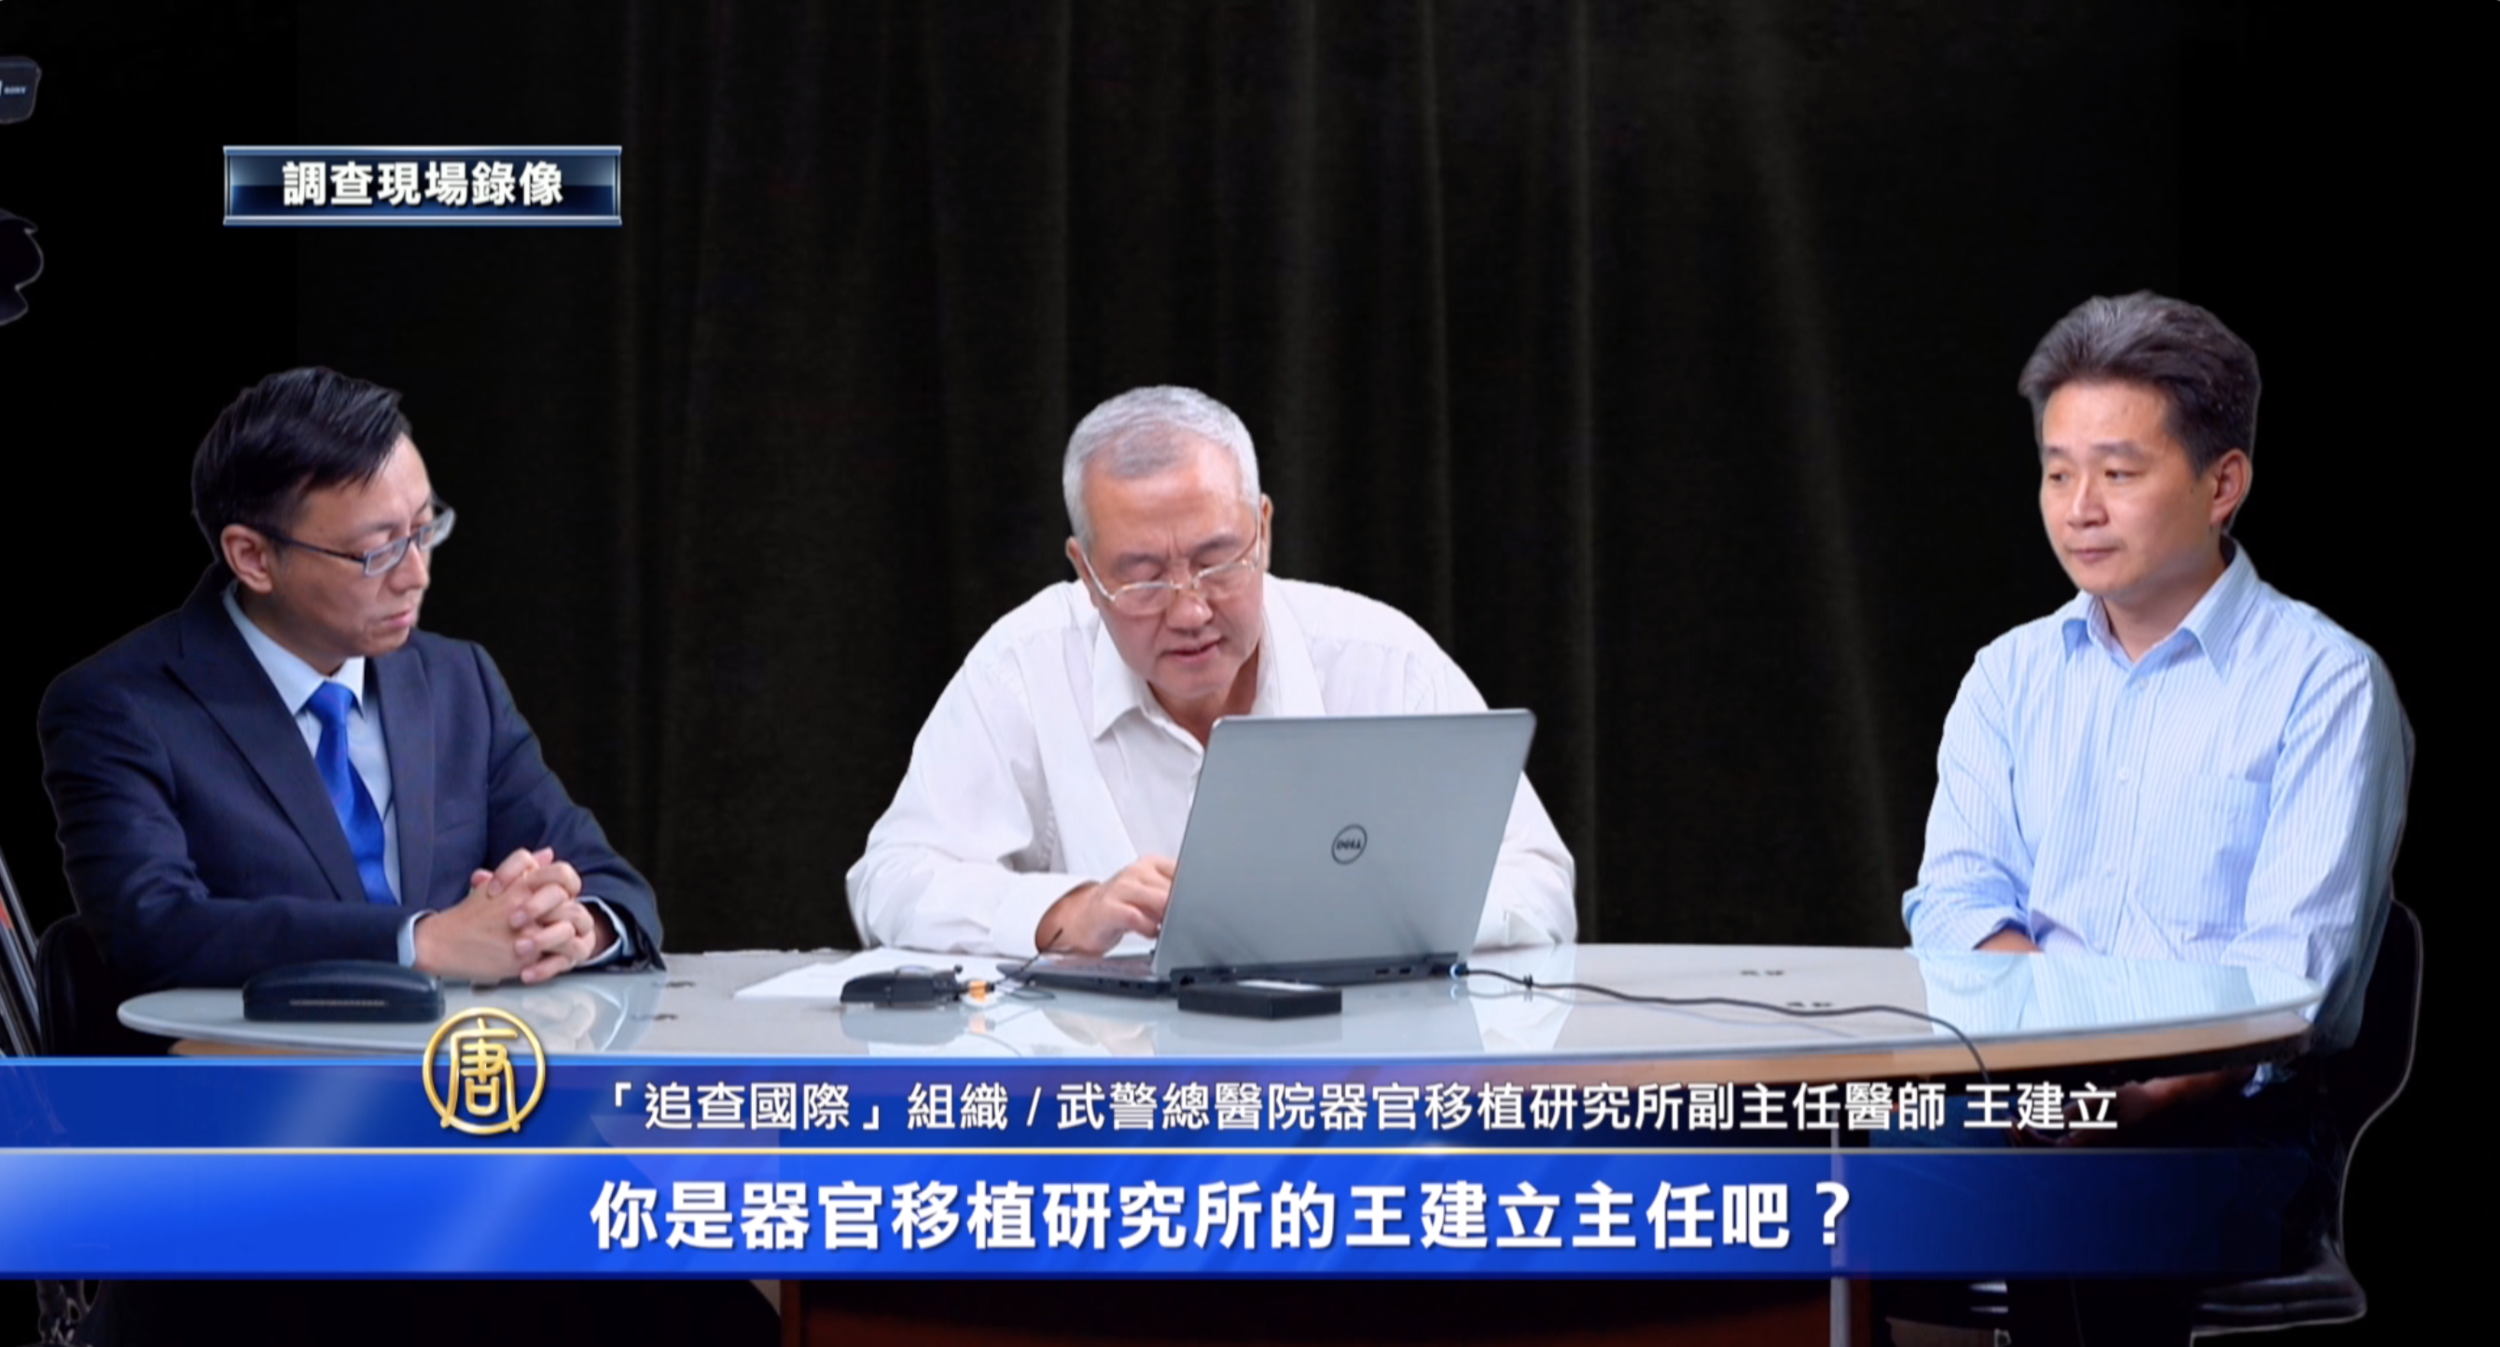 World Organization to Investigate the Persecution of Falun Gong President Wang Zhiyuan (C) makes phone calls to transplant doctors in China, witnessed by NTD commentators Tang Jingyuan (L) and Xia Xiaoqiang (R), in New York City on Nov. 2, 2018. (Screenshot/NTD)